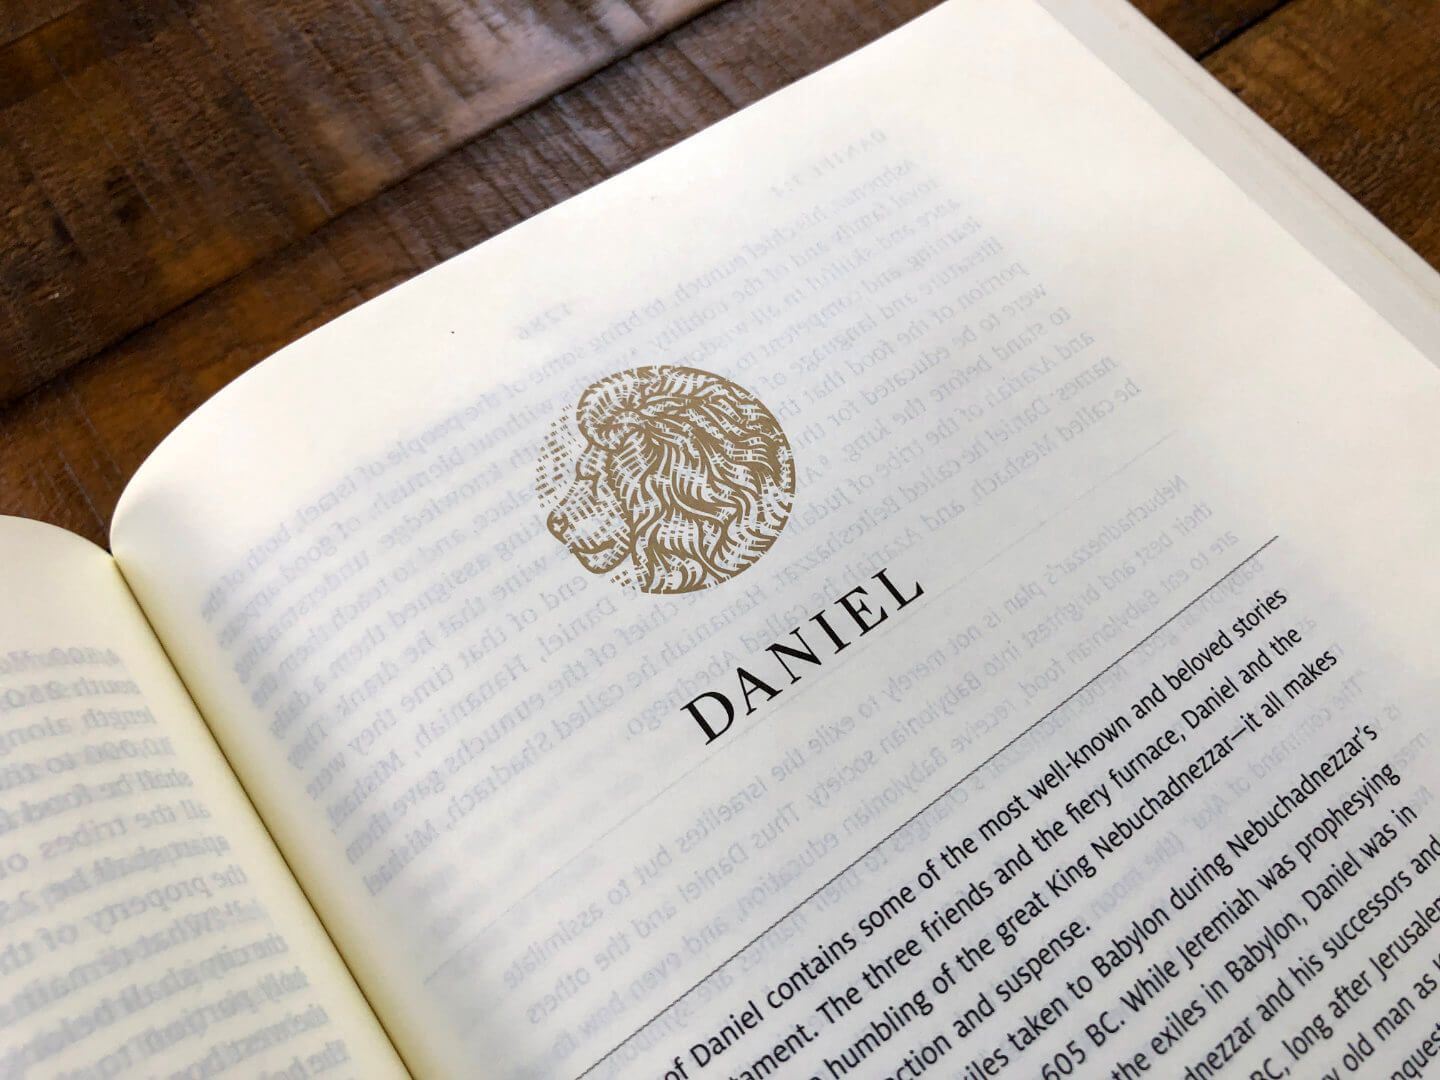 The heading image for the book of Daniel in the Story of Redemption Bible